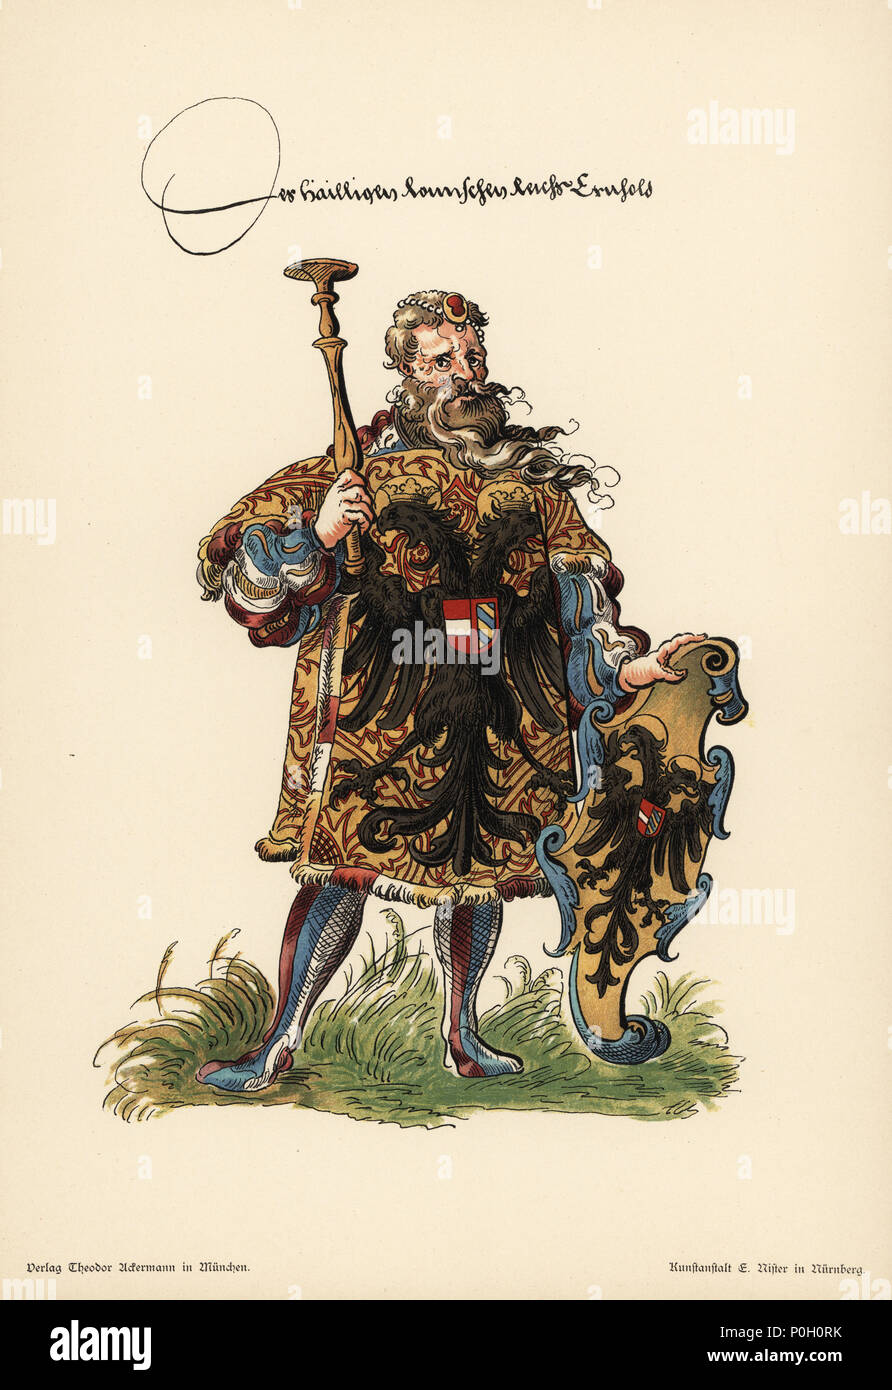 Herald of the Holy Roman Empire; Herold der heiliges Romisches Reich. He wears an armorial tunic and carries an escutcheon with the black double-headed eagle on gold field. Chromolithograph from Otto Watzelberger's Beitraege zum Formenschatz der Heraldik (Contributions to the Vocabulary of Heraldry), Theodor Ackermann, Munich, 1900. Otto Watzelberger was Secretary of the Koeniglich Bayerischen Haus-Ritter-Ordens vom heiligen Georg (Royal Bavarian House Equestrian Order of Saint George). - Stock Image